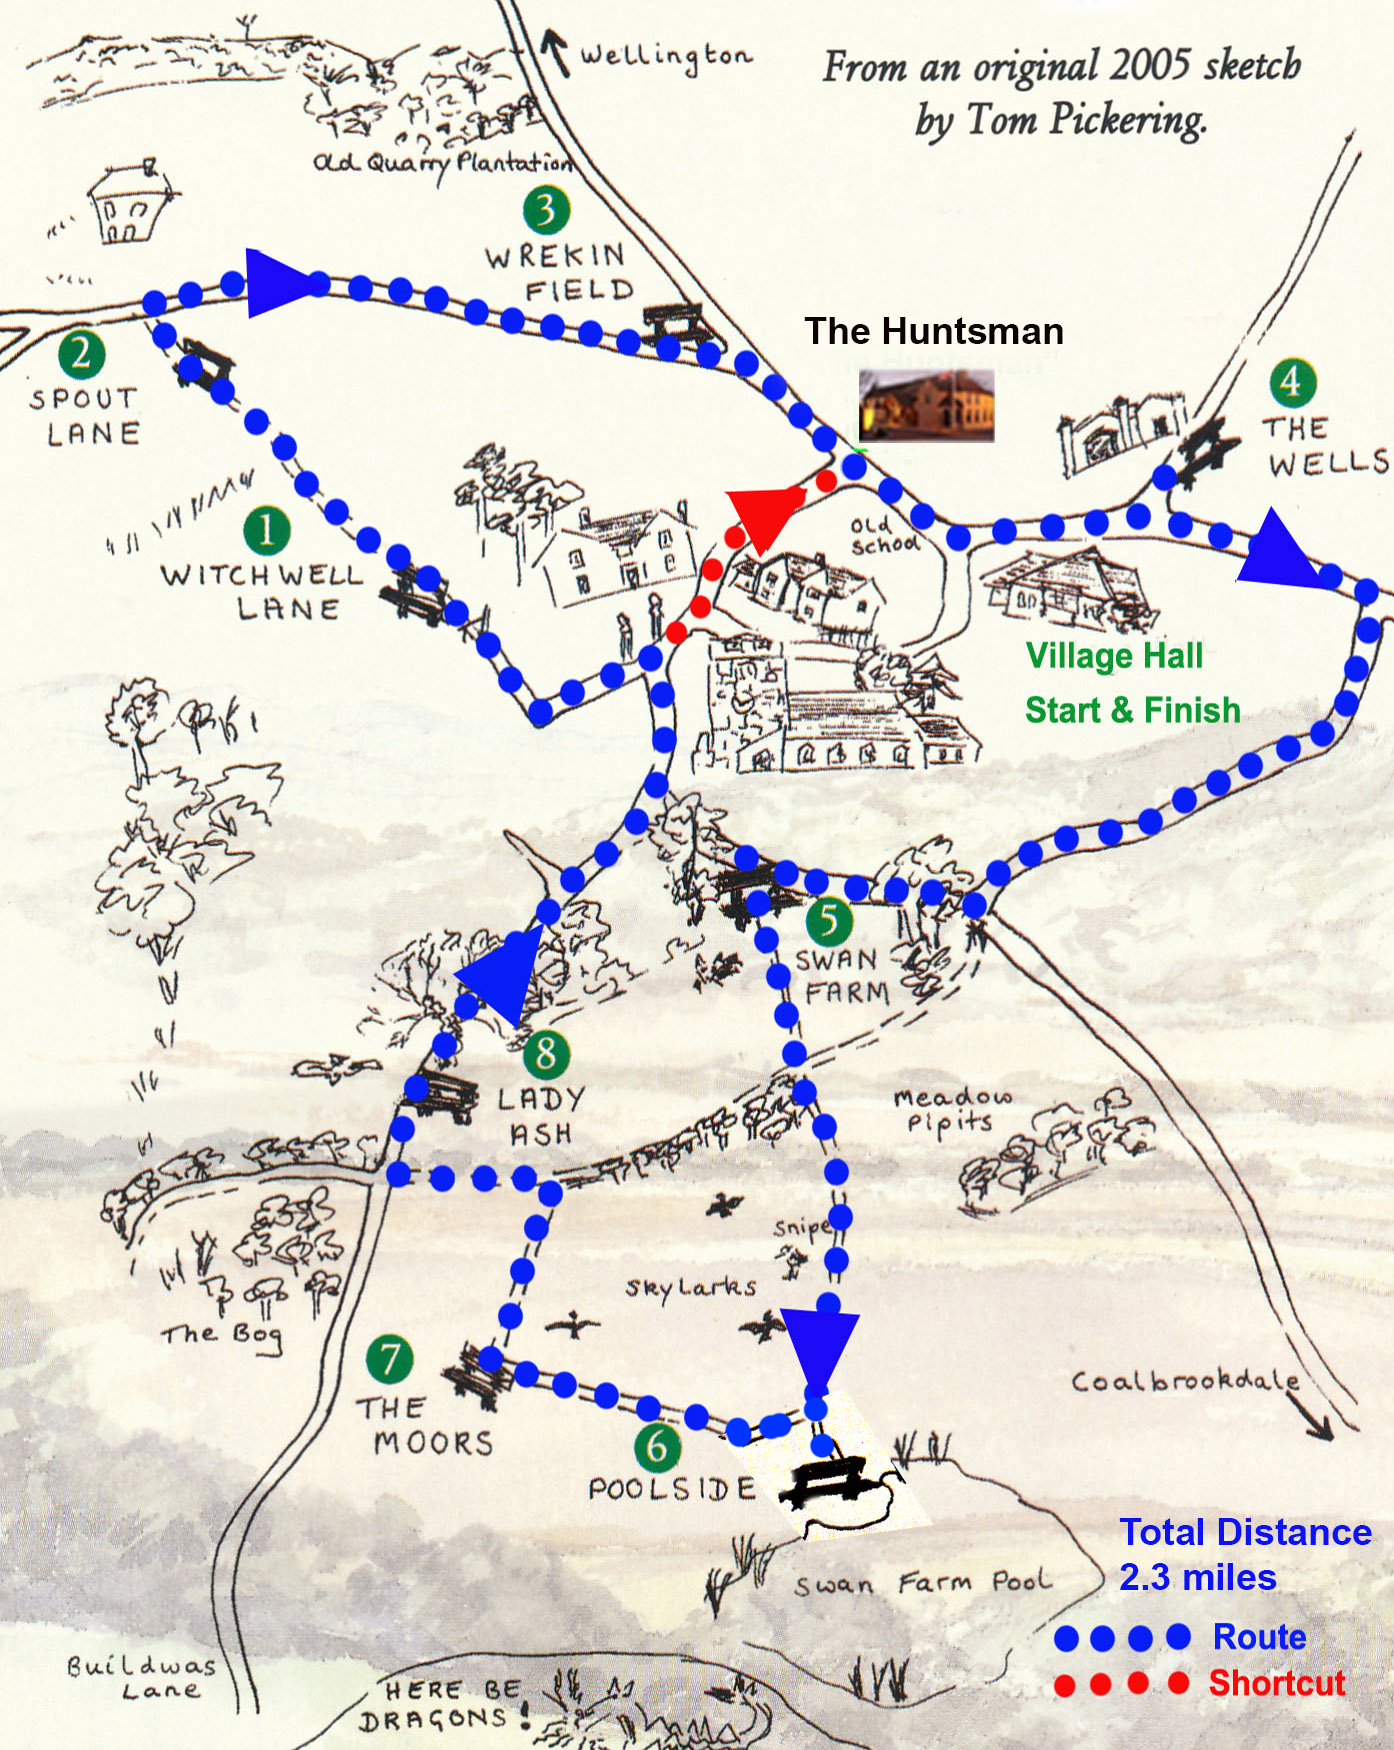 Benchwalks Map, Little Wenlock Parish Council